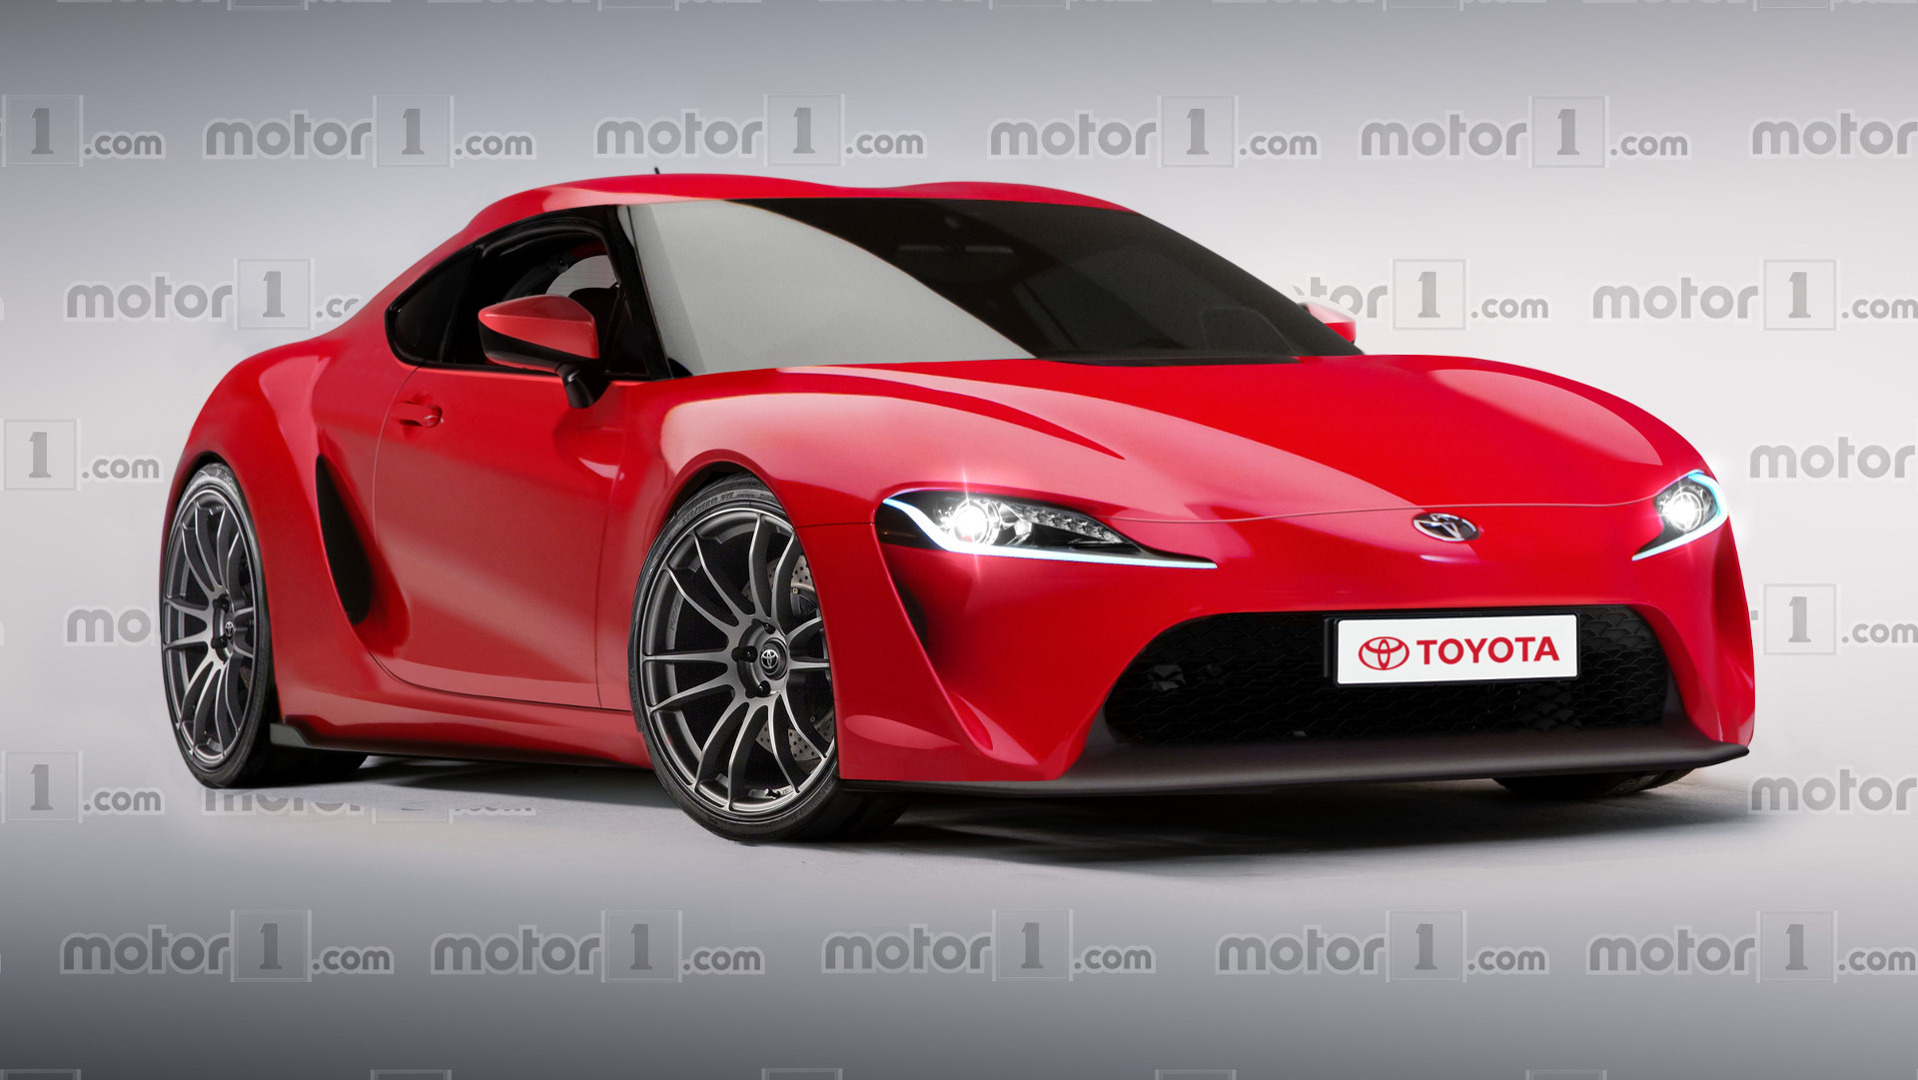 Toyota Supra 2018 >> Much Hyped Toyota Supra Revival Digitally Imagined